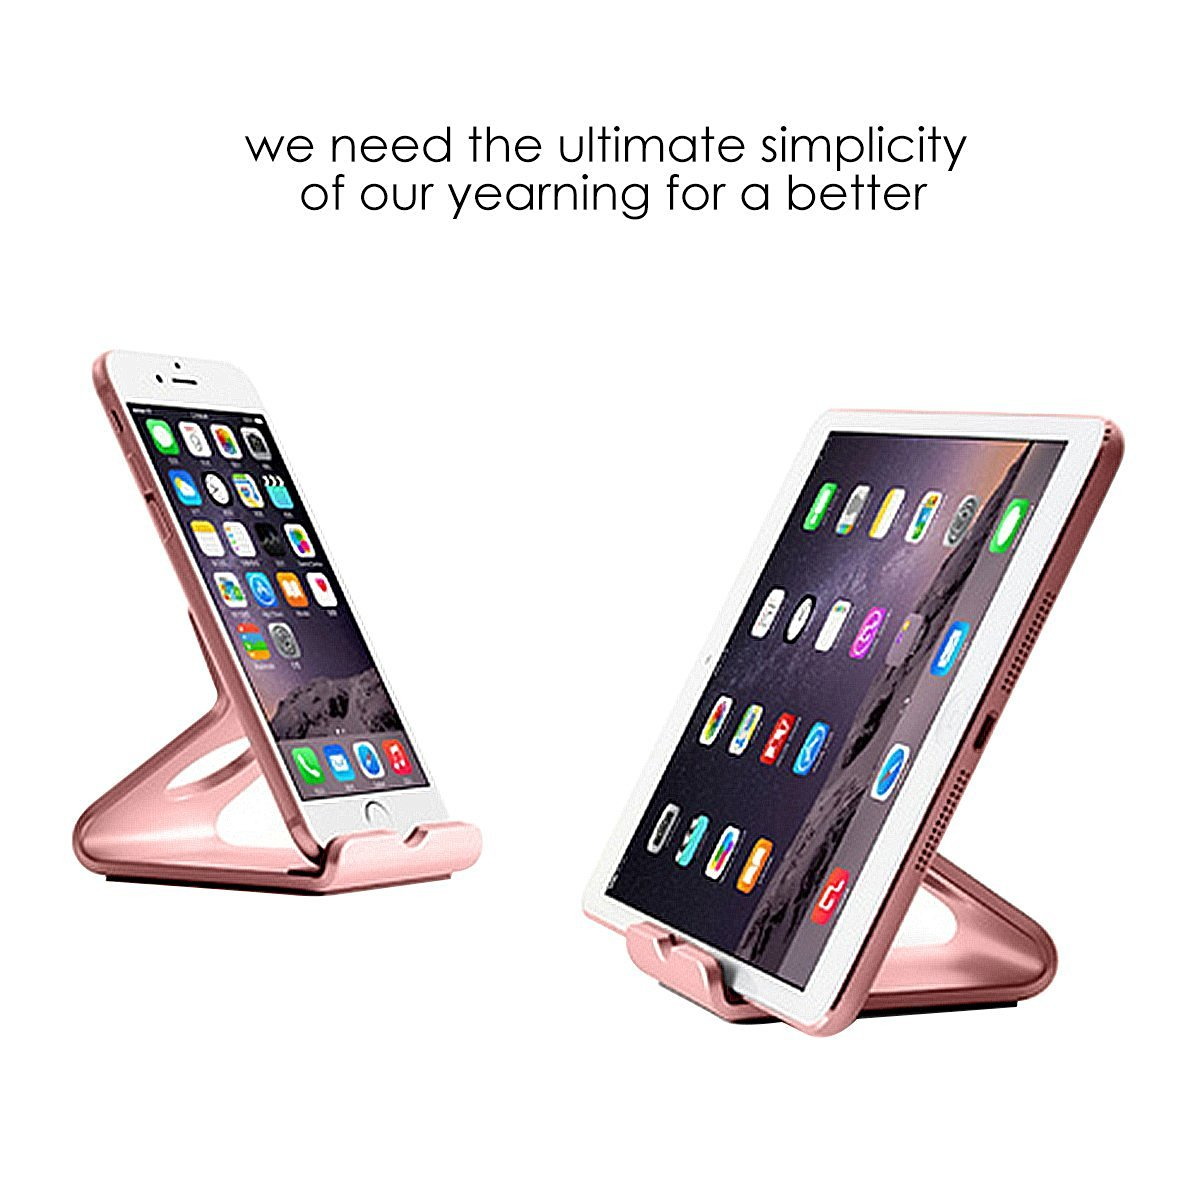 iPhone Stand, Oenbopo Aluminum Desktop Phone Tablet Stand Holder For iPhone SE 6S 6Plus 5s Samsung Galaxy S7 S7 Edge S6 S5 Note 5 4 3 Kindle Fire 7 Tablet(3.5~6inch Mobile&7 inch Tablet)